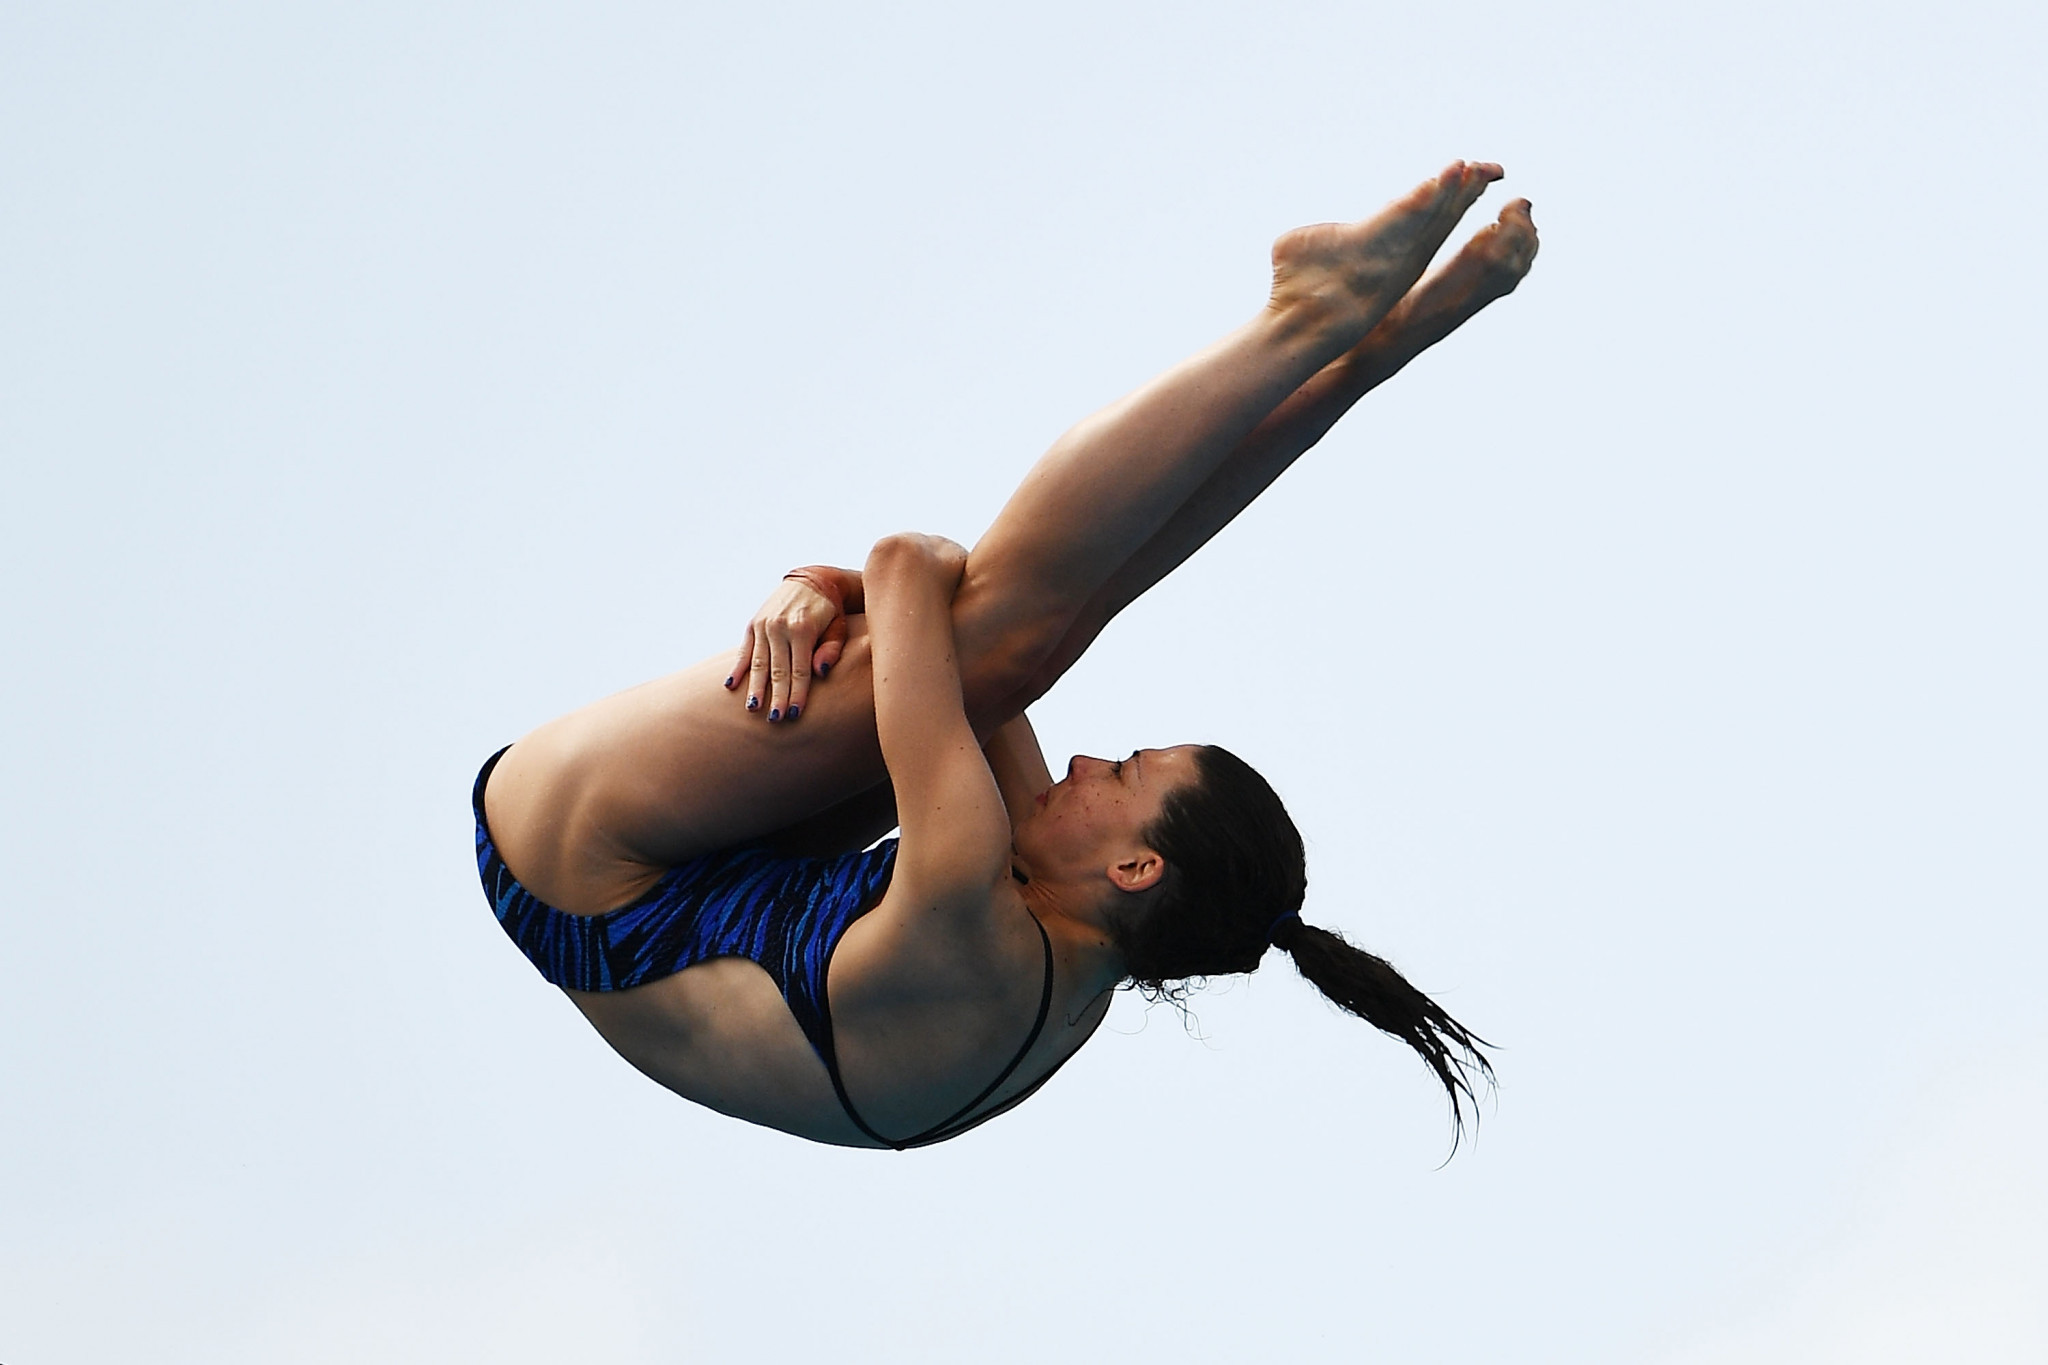 Britain's Gemma McArthur was successful in the mixed synchro platform, winning gold with Lucas Thomson as well as finishing fourth in the women's platform ©Getty Images